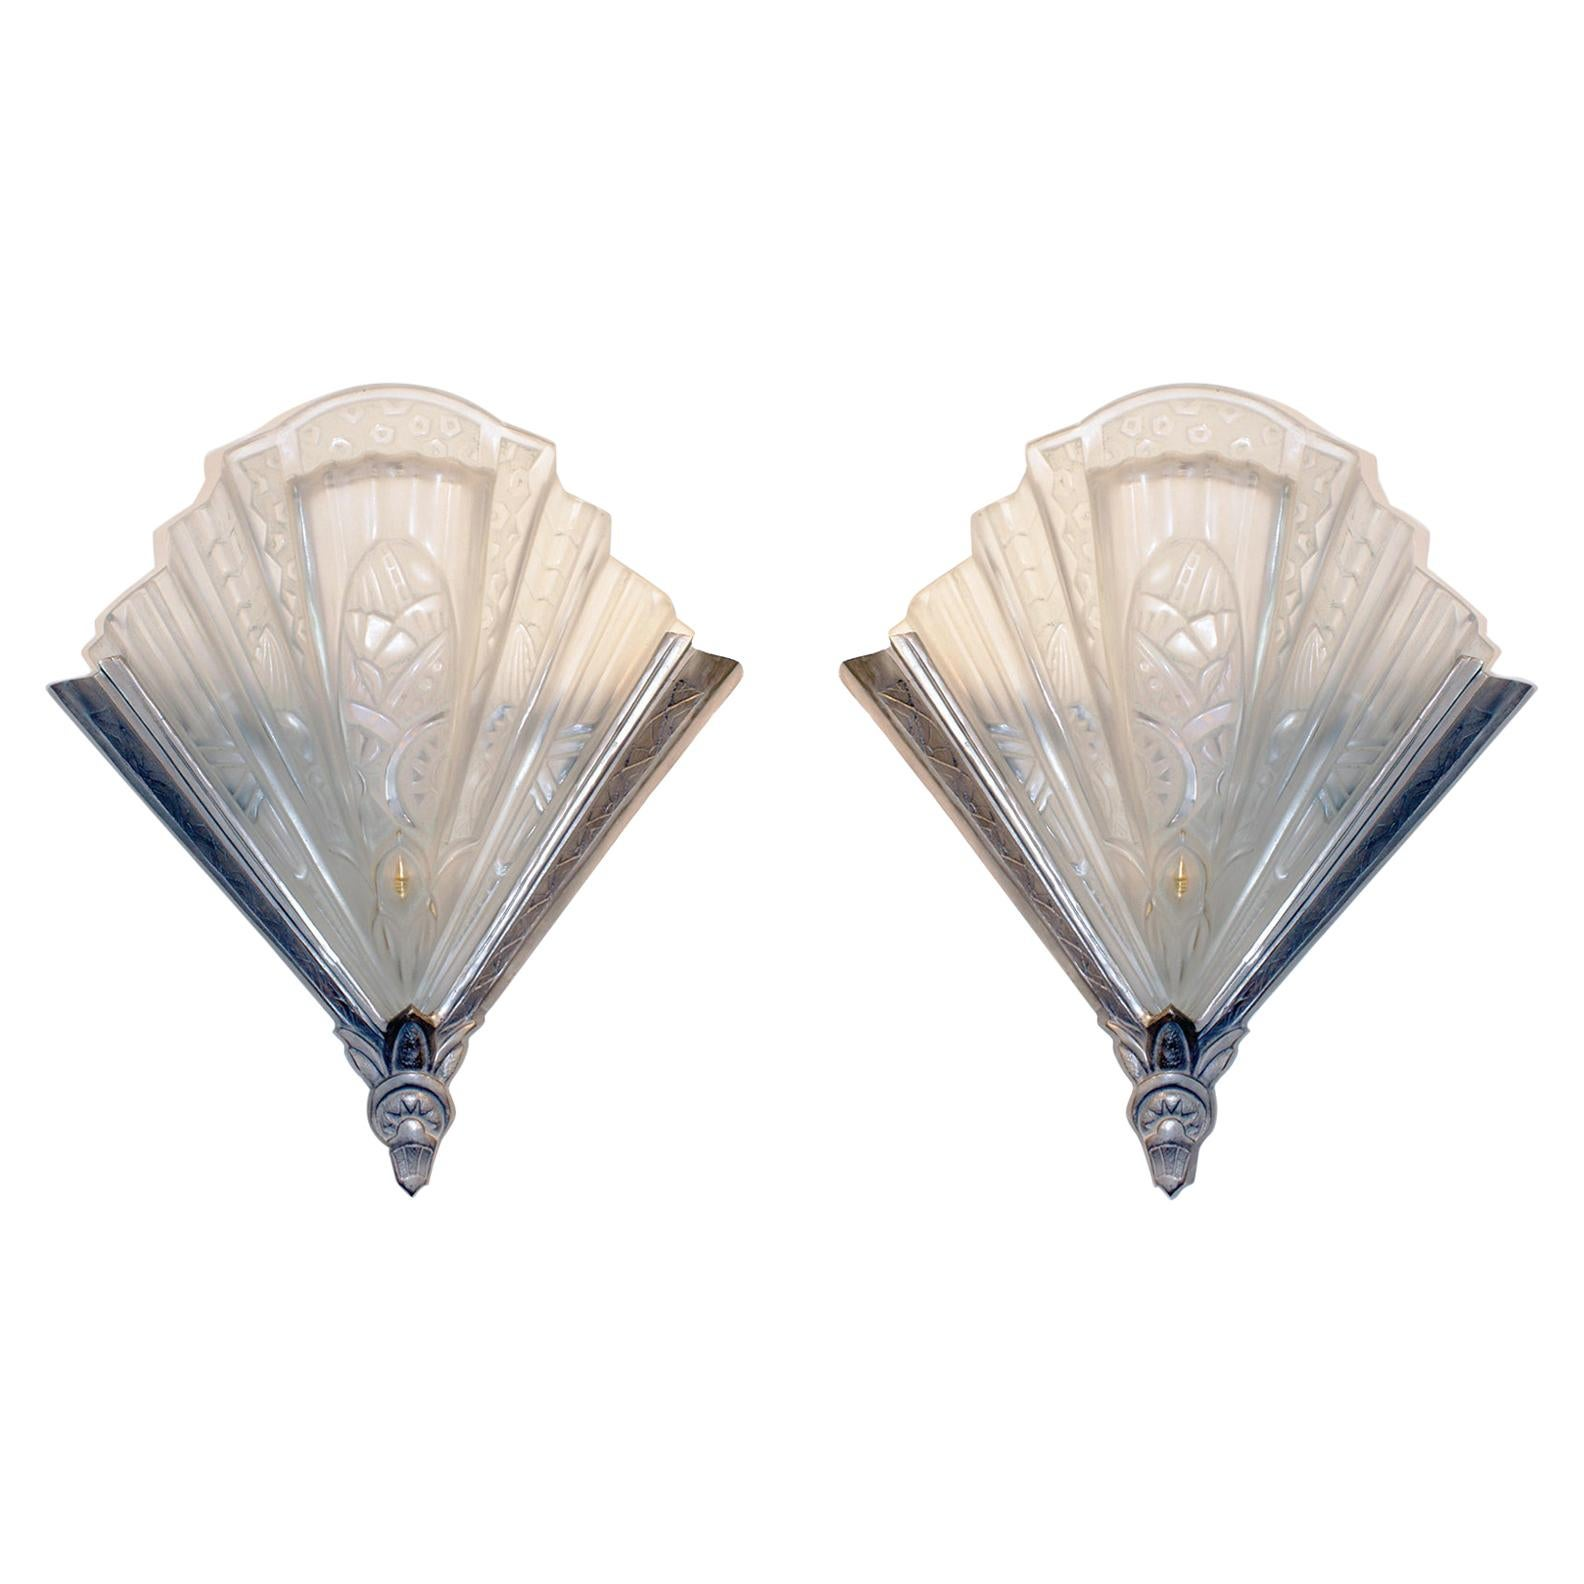 Pair of French Art Deco Wall Sconces Signed Frontisi